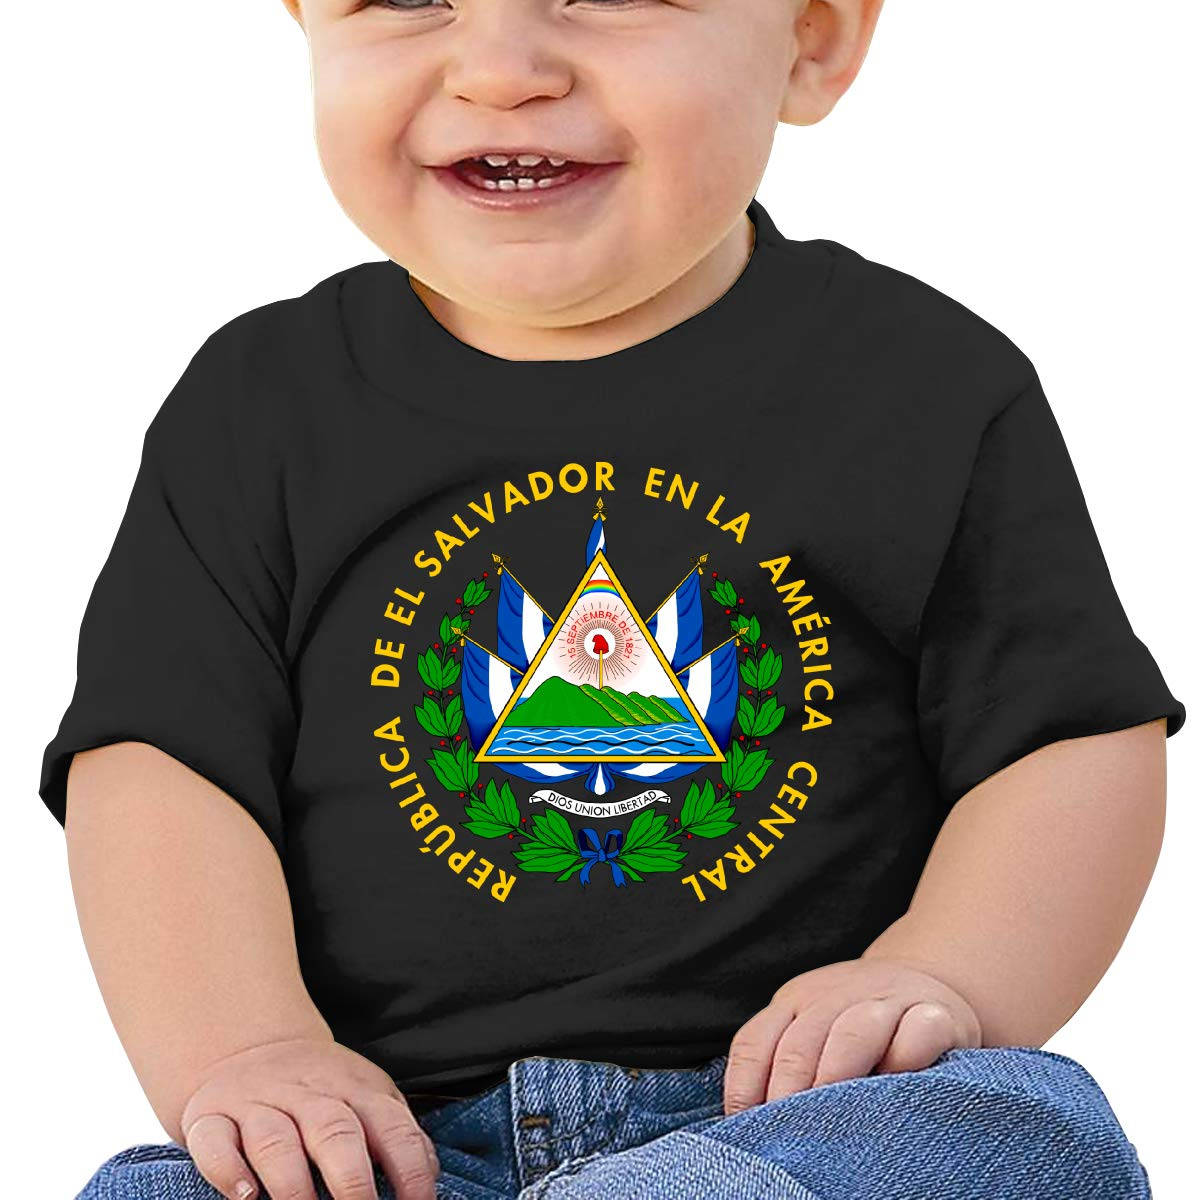 El Salvador Coat of Arms Jeans Baby T-Shirt Toddler Cotton T Shirts Fashion Basic Shirt for 6M-2T Baby